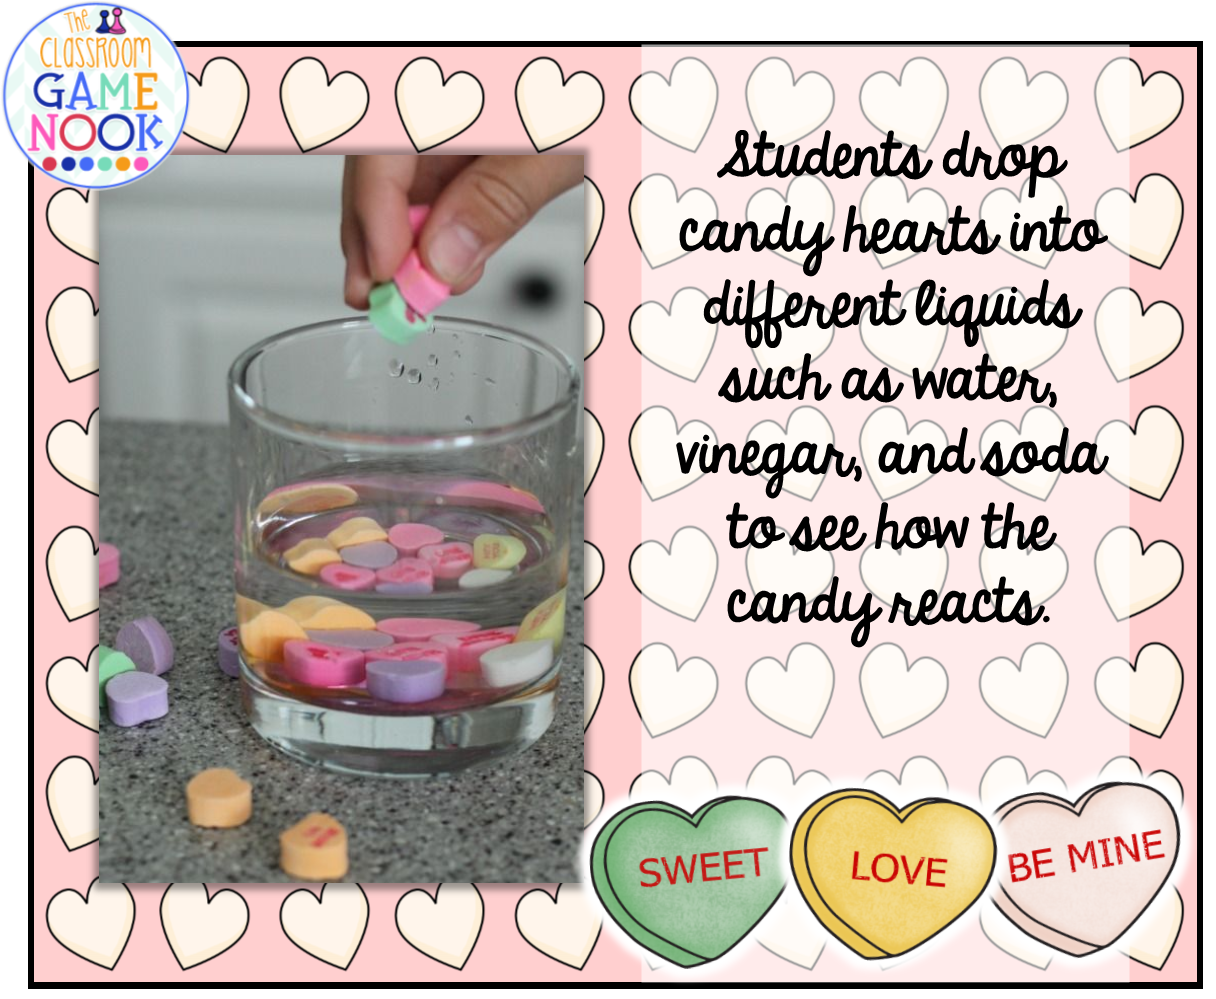 The Classroom Game Nook 6 Ways To Use Candy Hearts For